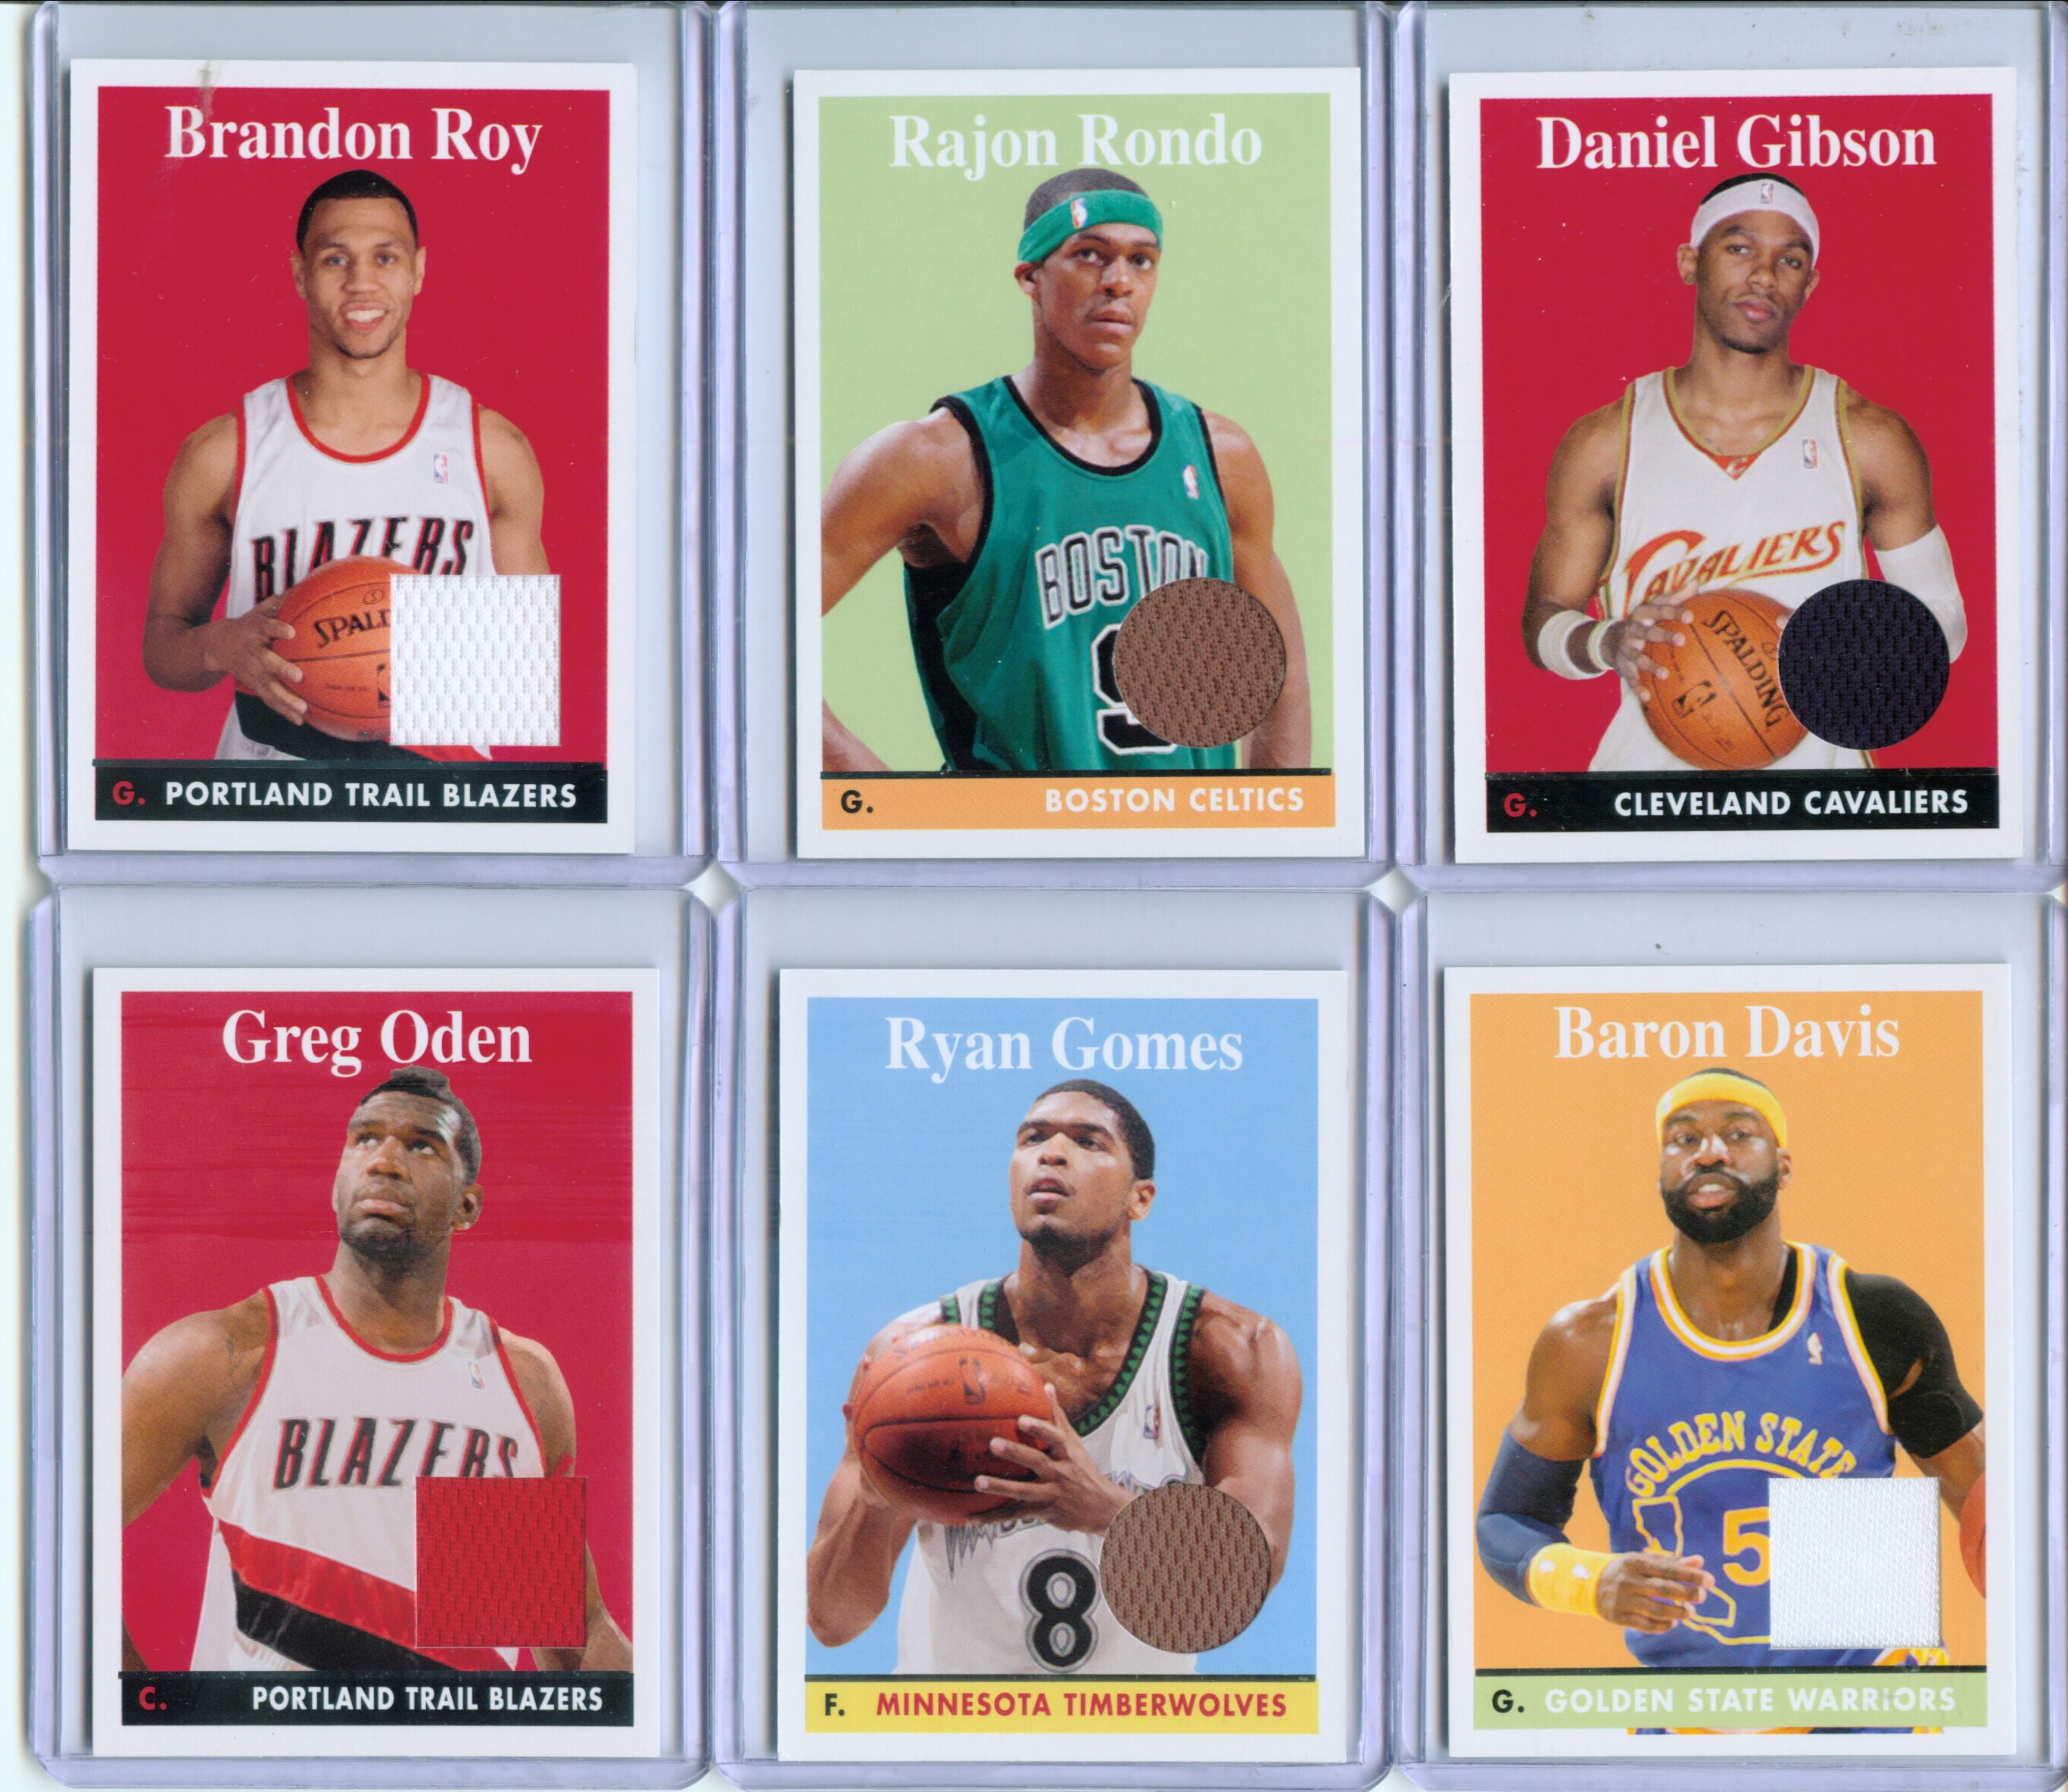 2008-09 Topps 1958-59 Variations Relics #65 Rajon Rondo C